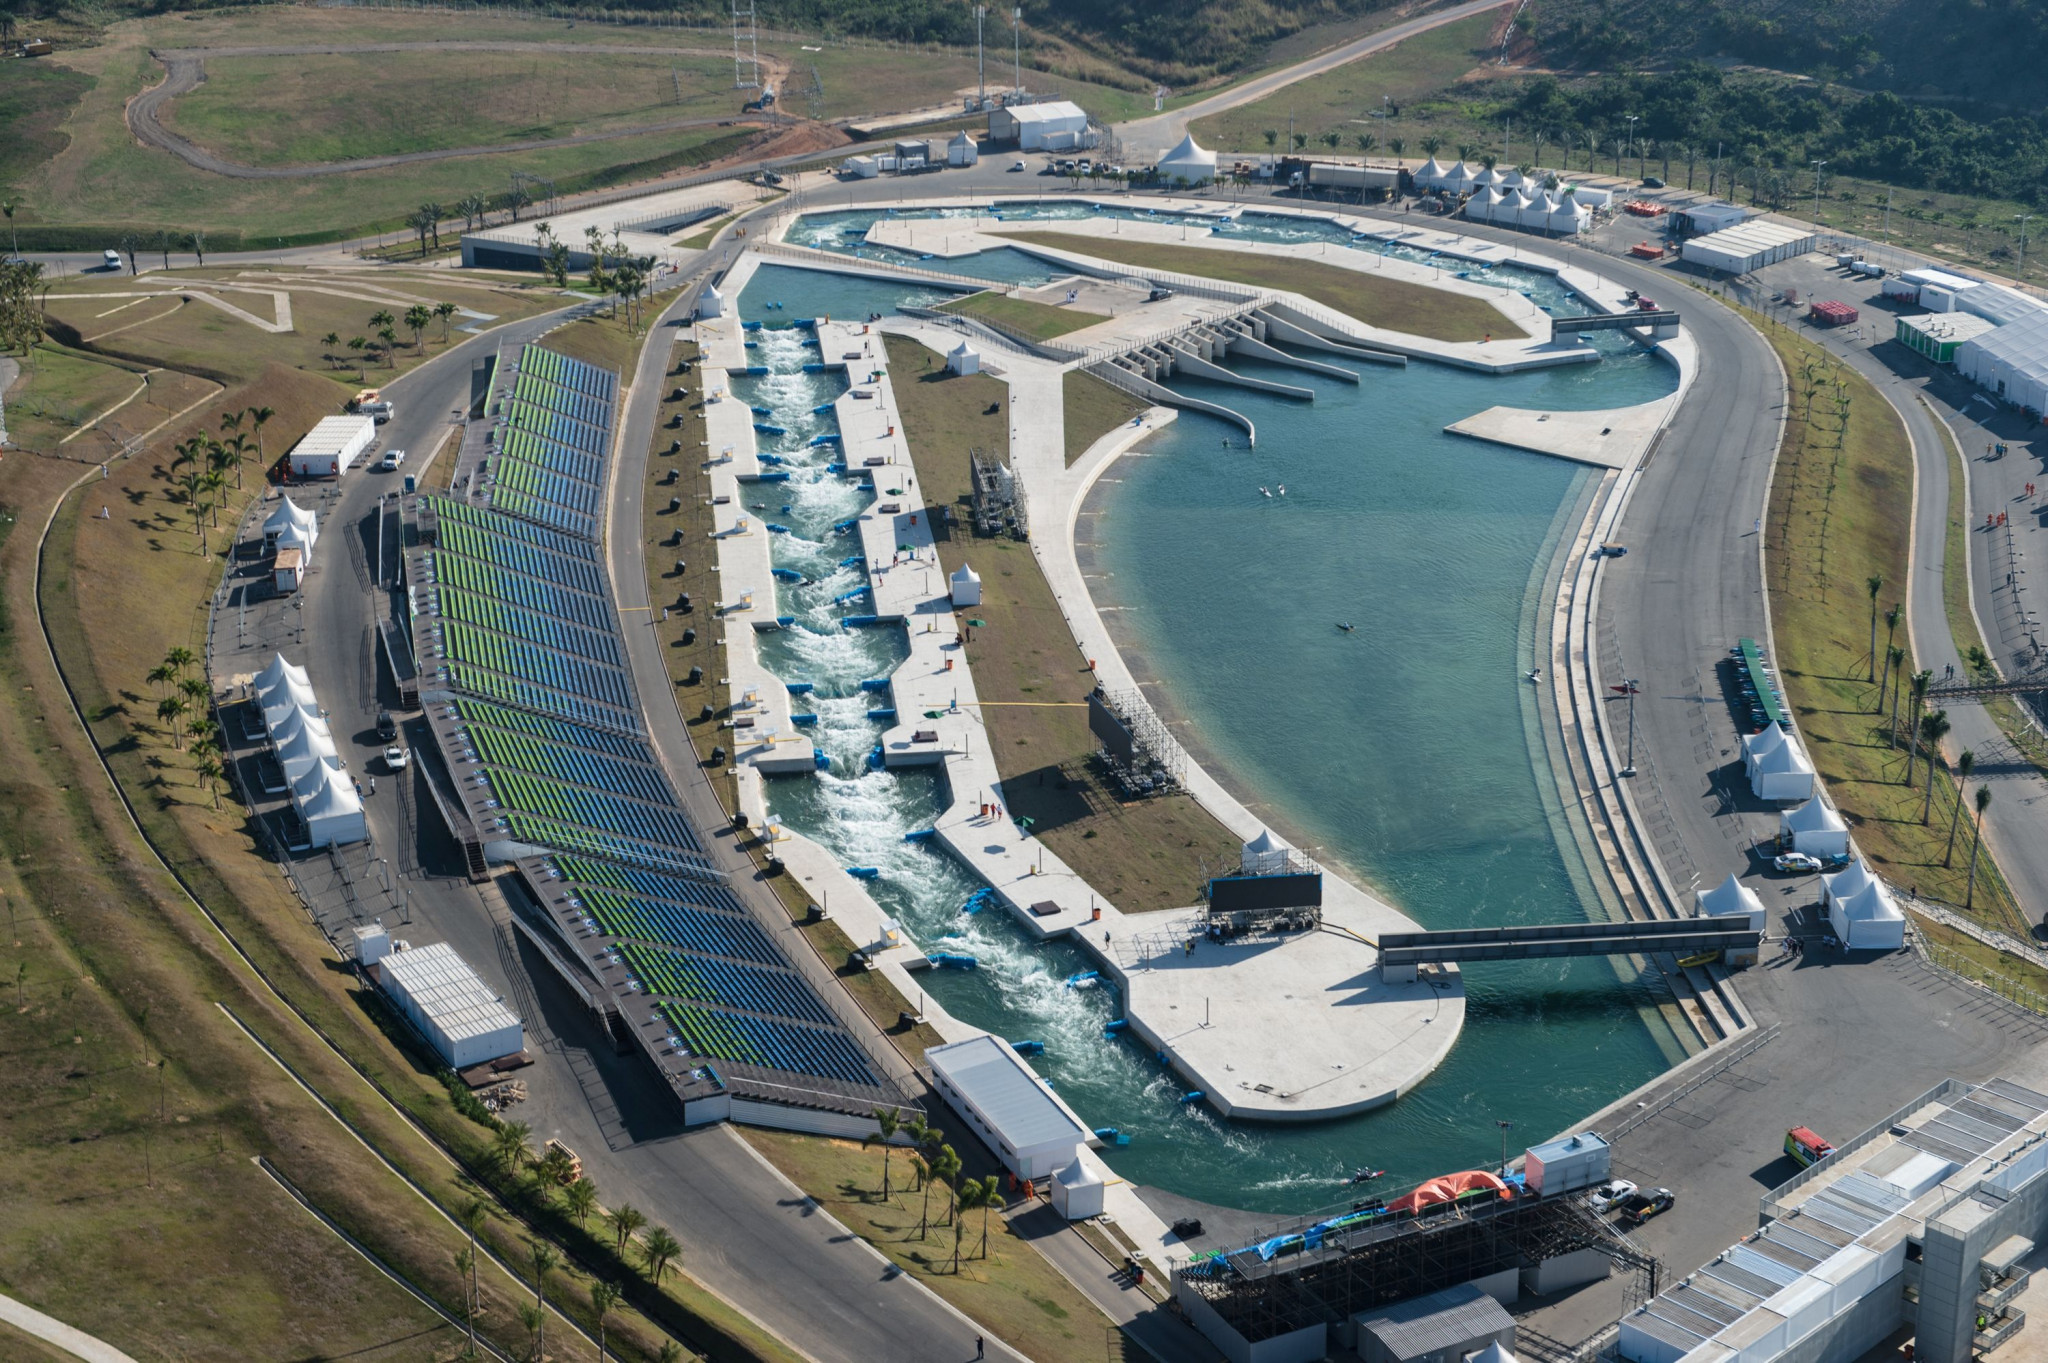 Americas Olympic canoe slalom qualifier cancelled as COVID-19 deaths still rise in Brazil